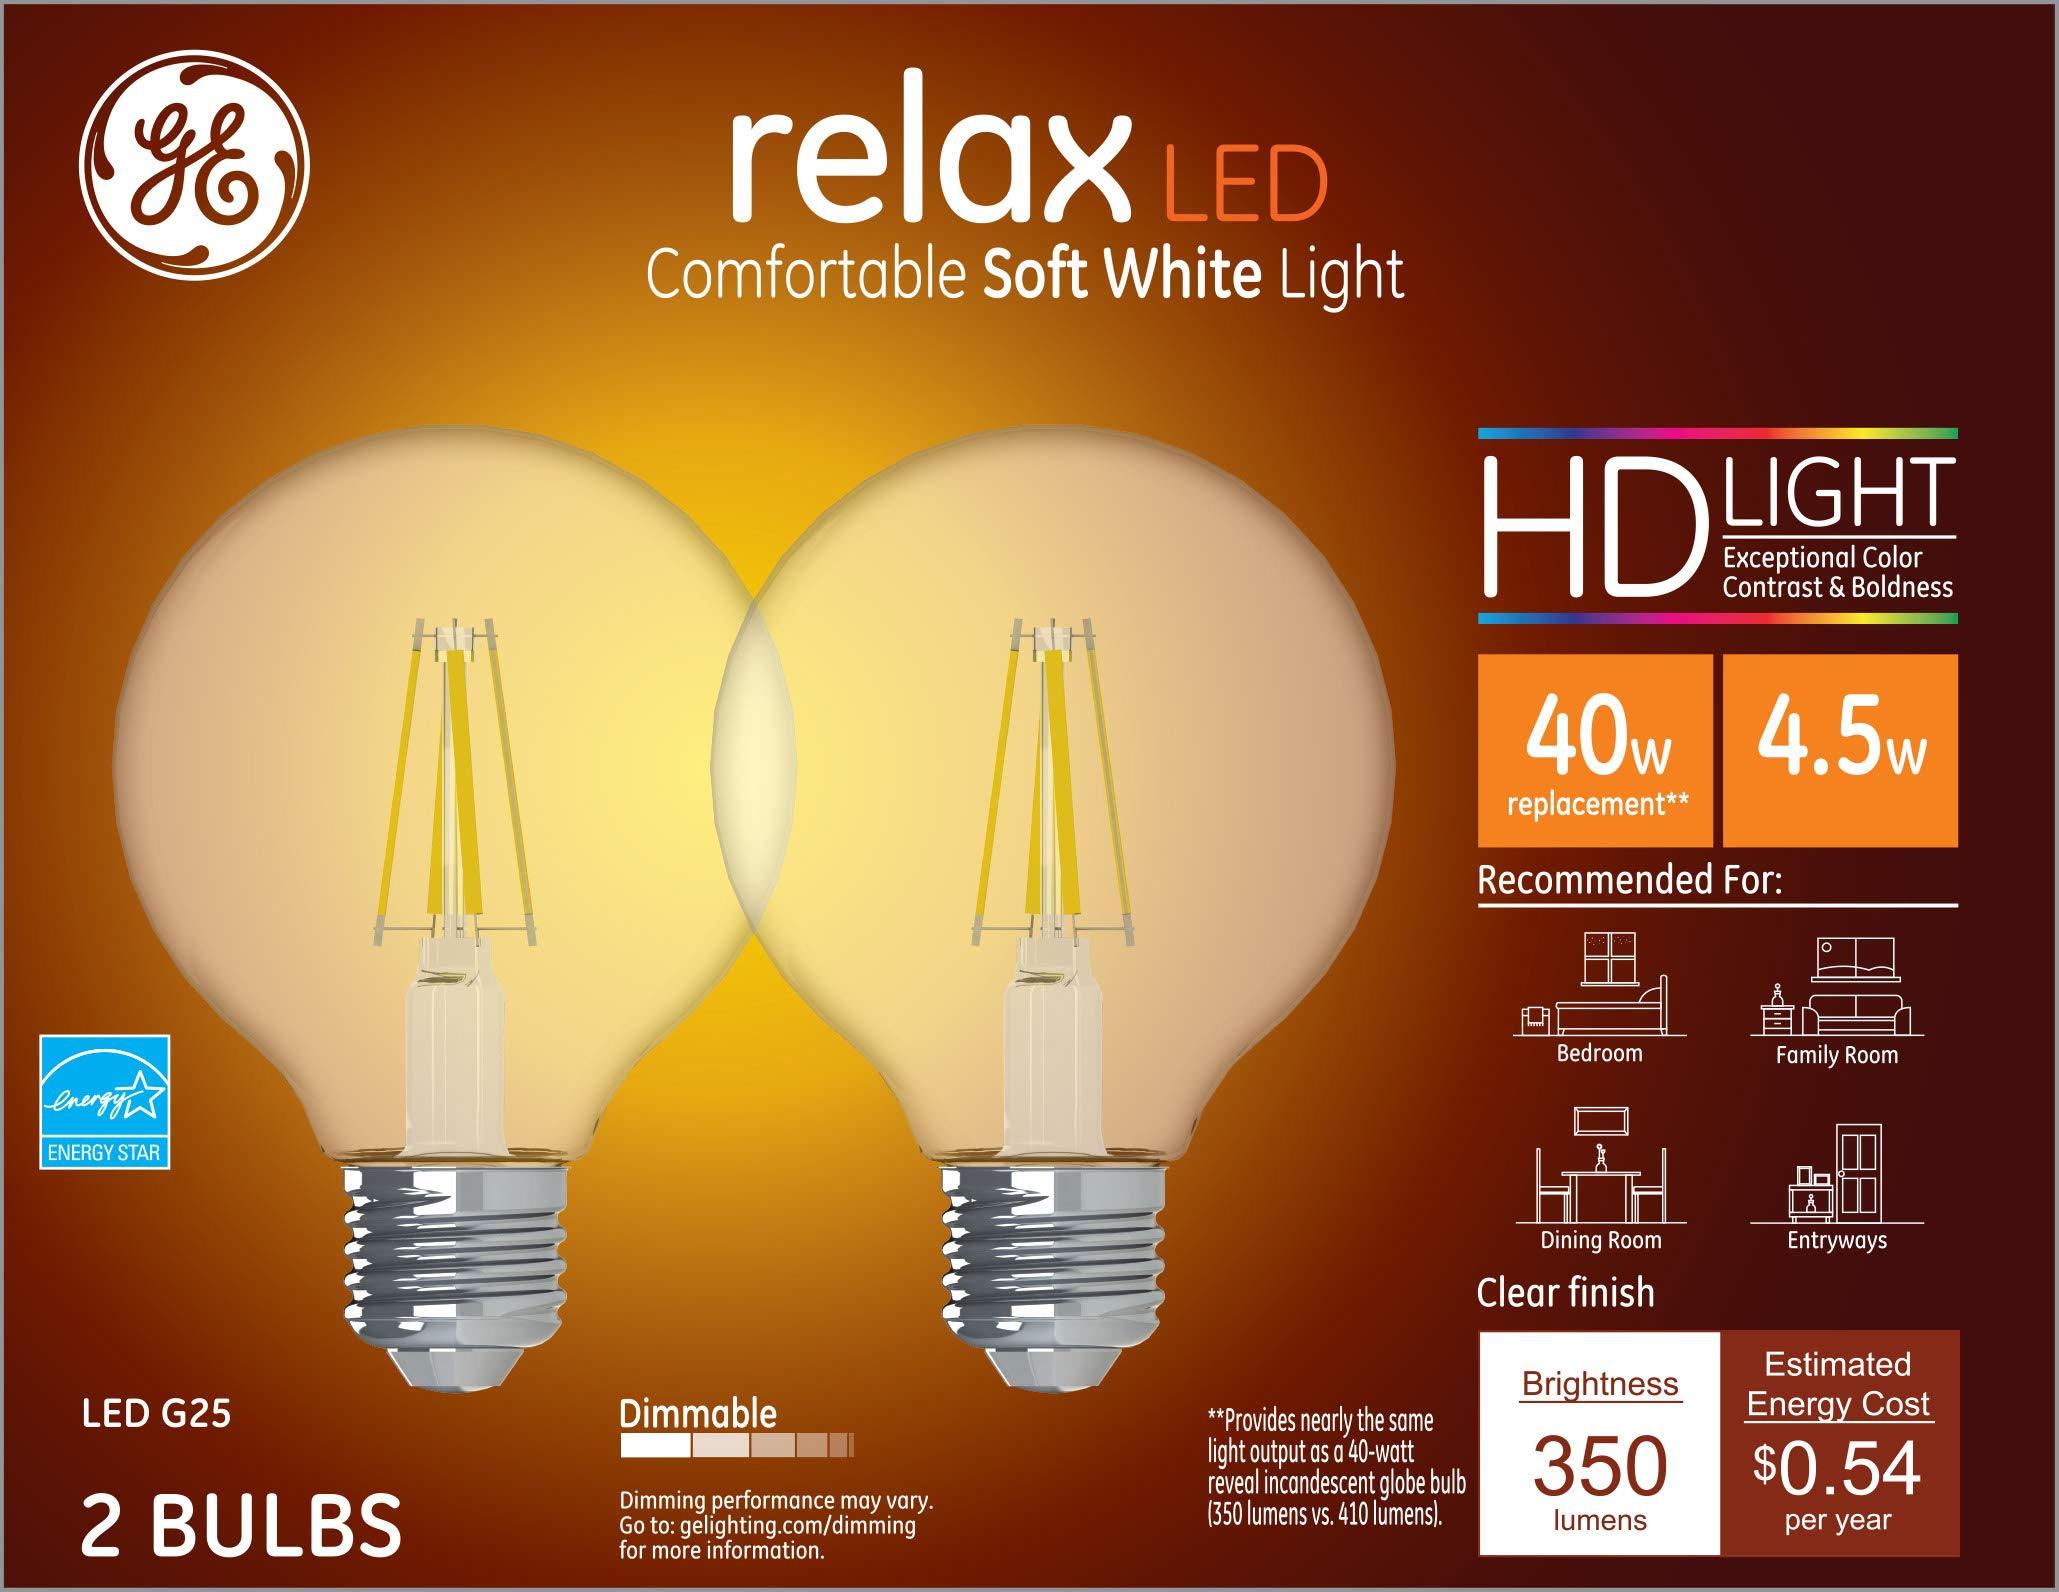 GE Lighting 31536 Clear Finish Light Bulb Relax HD Dimmable LED G25 Decorative Globe 4.5 (40-Watt Replacement), 350-Lumen Medium Base, 2-Pack, Soft White, 2 Count